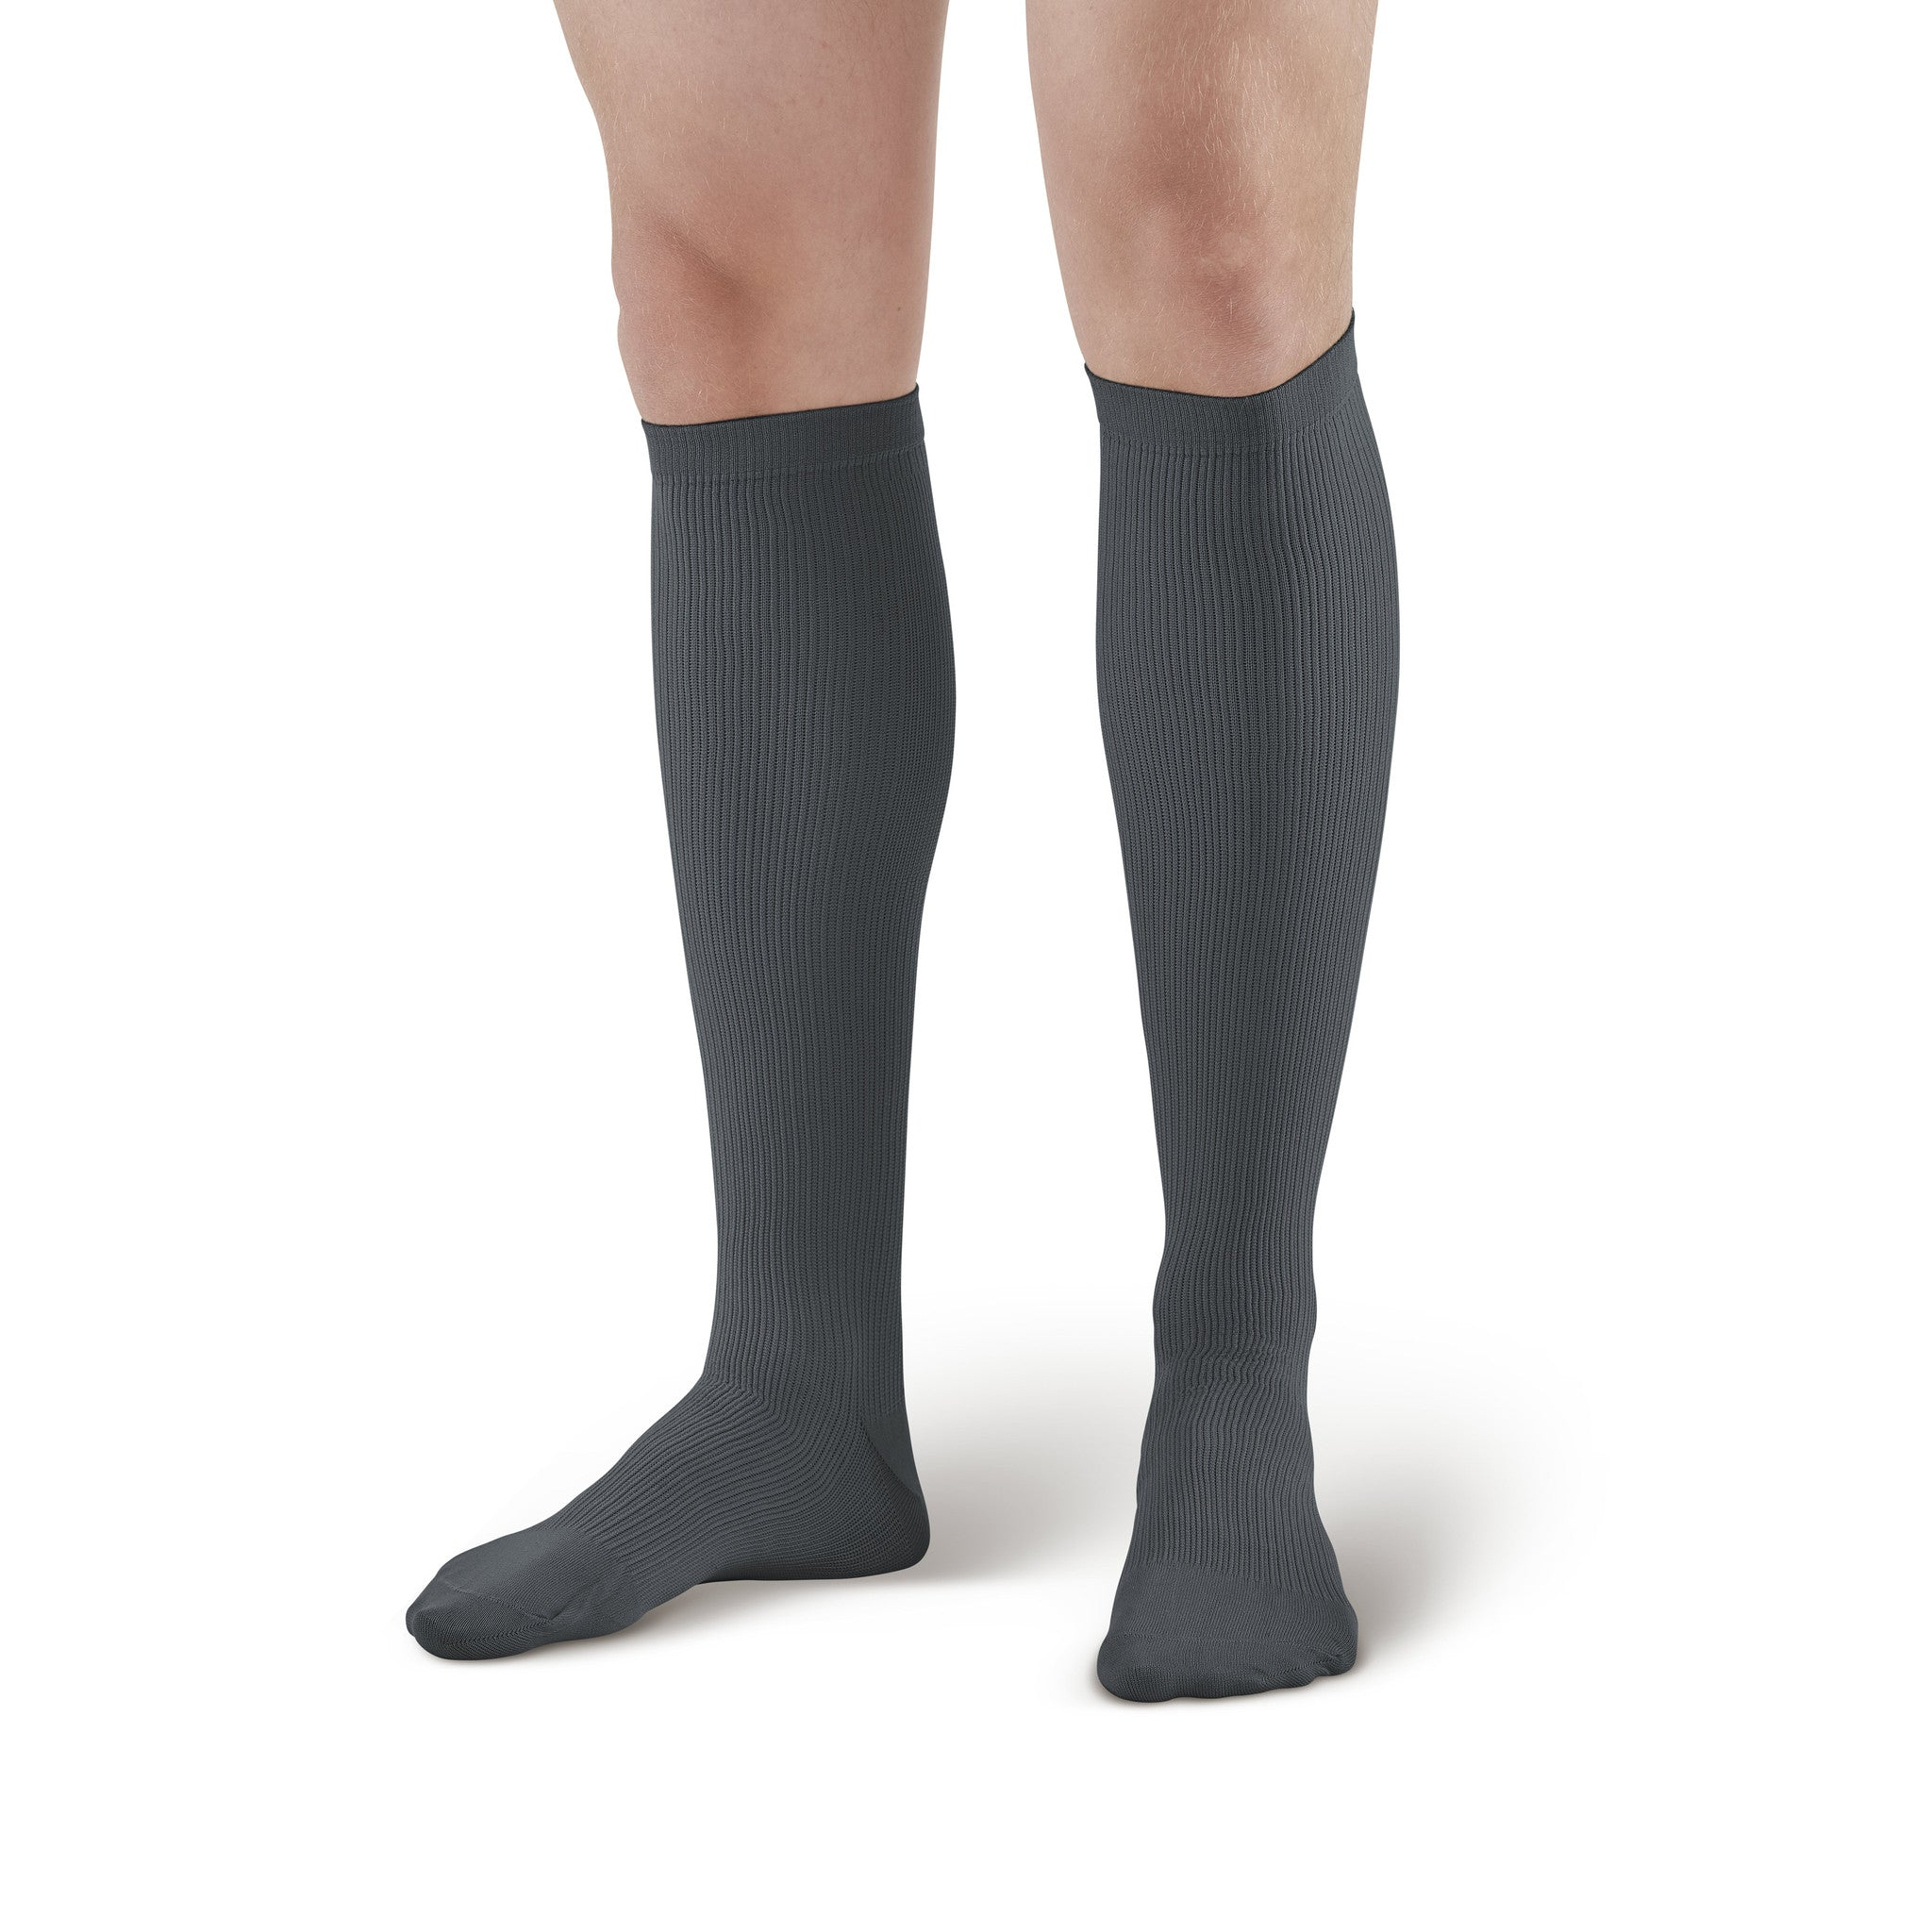 4c98fe50e Ames Walker Knee High Compression Socks 20-30 mmHg | Low Price Guarantee